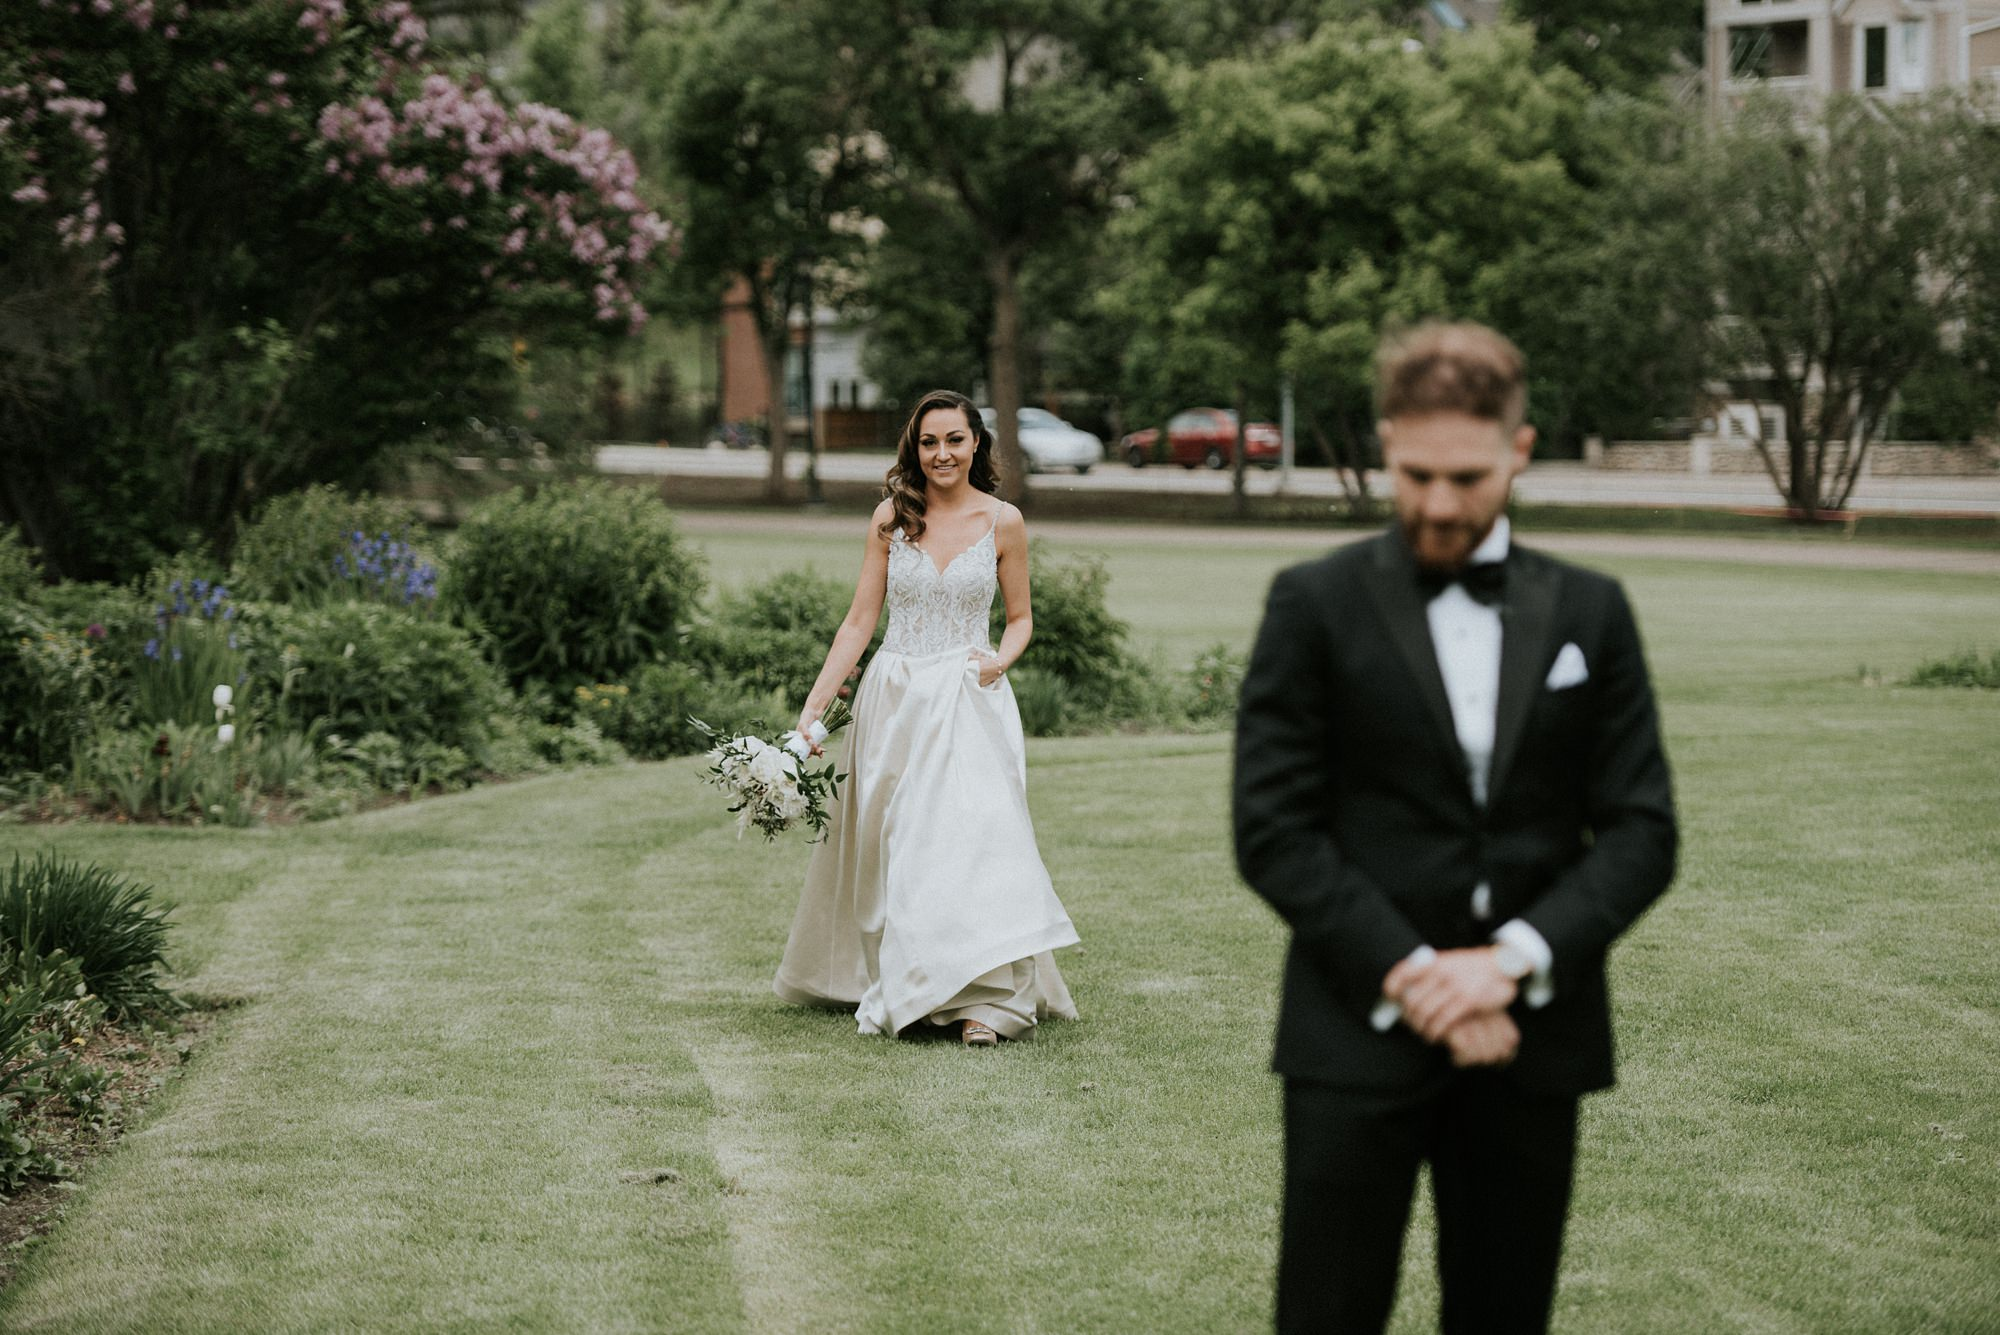 bride and groom at riley park in calgary wedding sharing first look